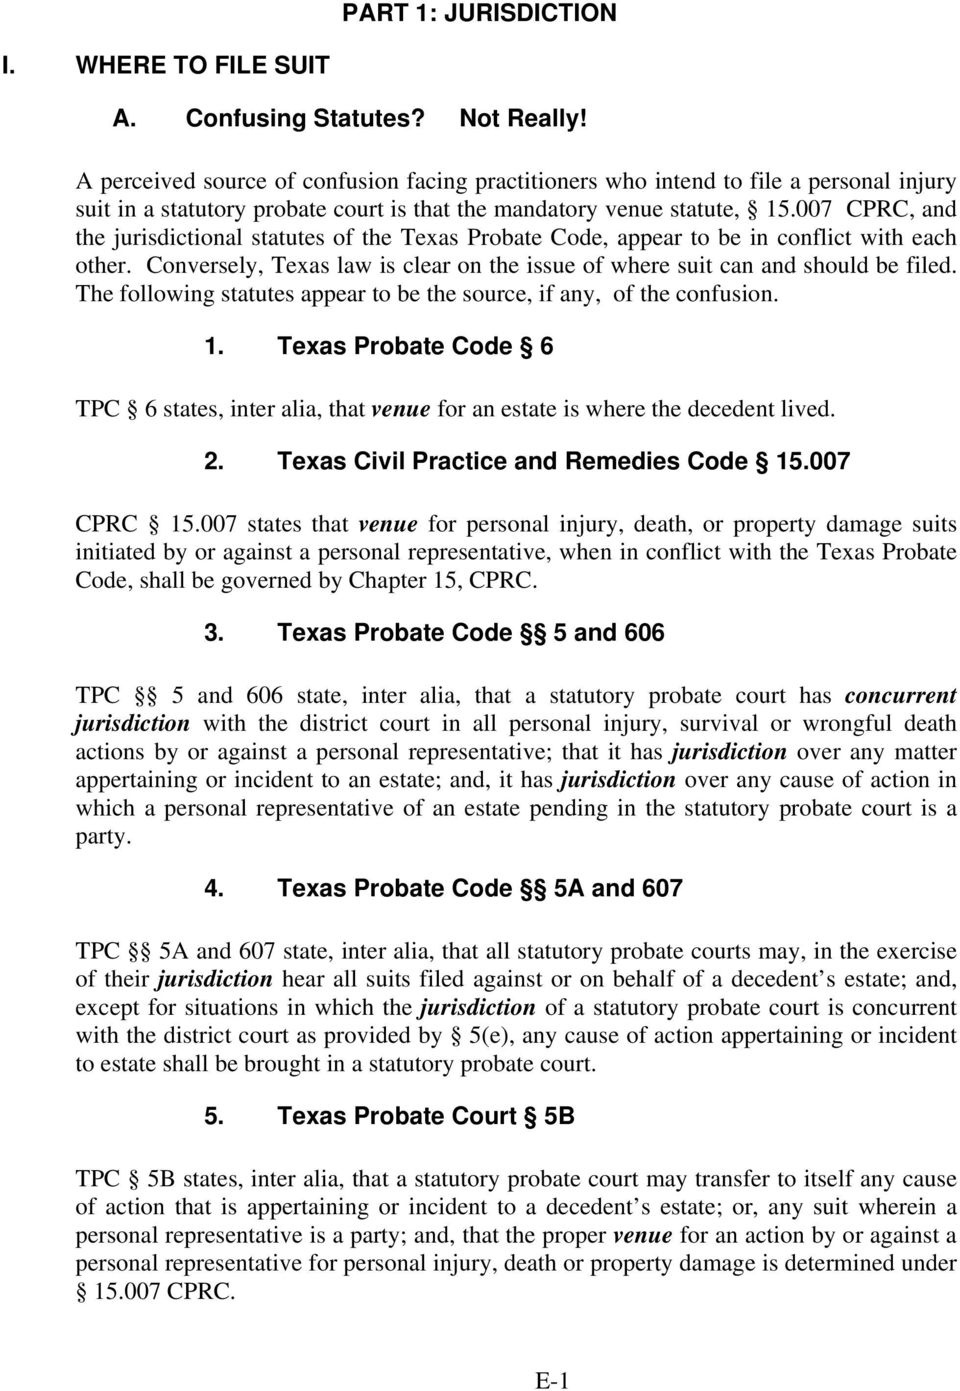 007 CPRC, and the jurisdictional statutes of the Texas Probate Code, appear to be in conflict with each other. Conversely, Texas law is clear on the issue of where suit can and should be filed.